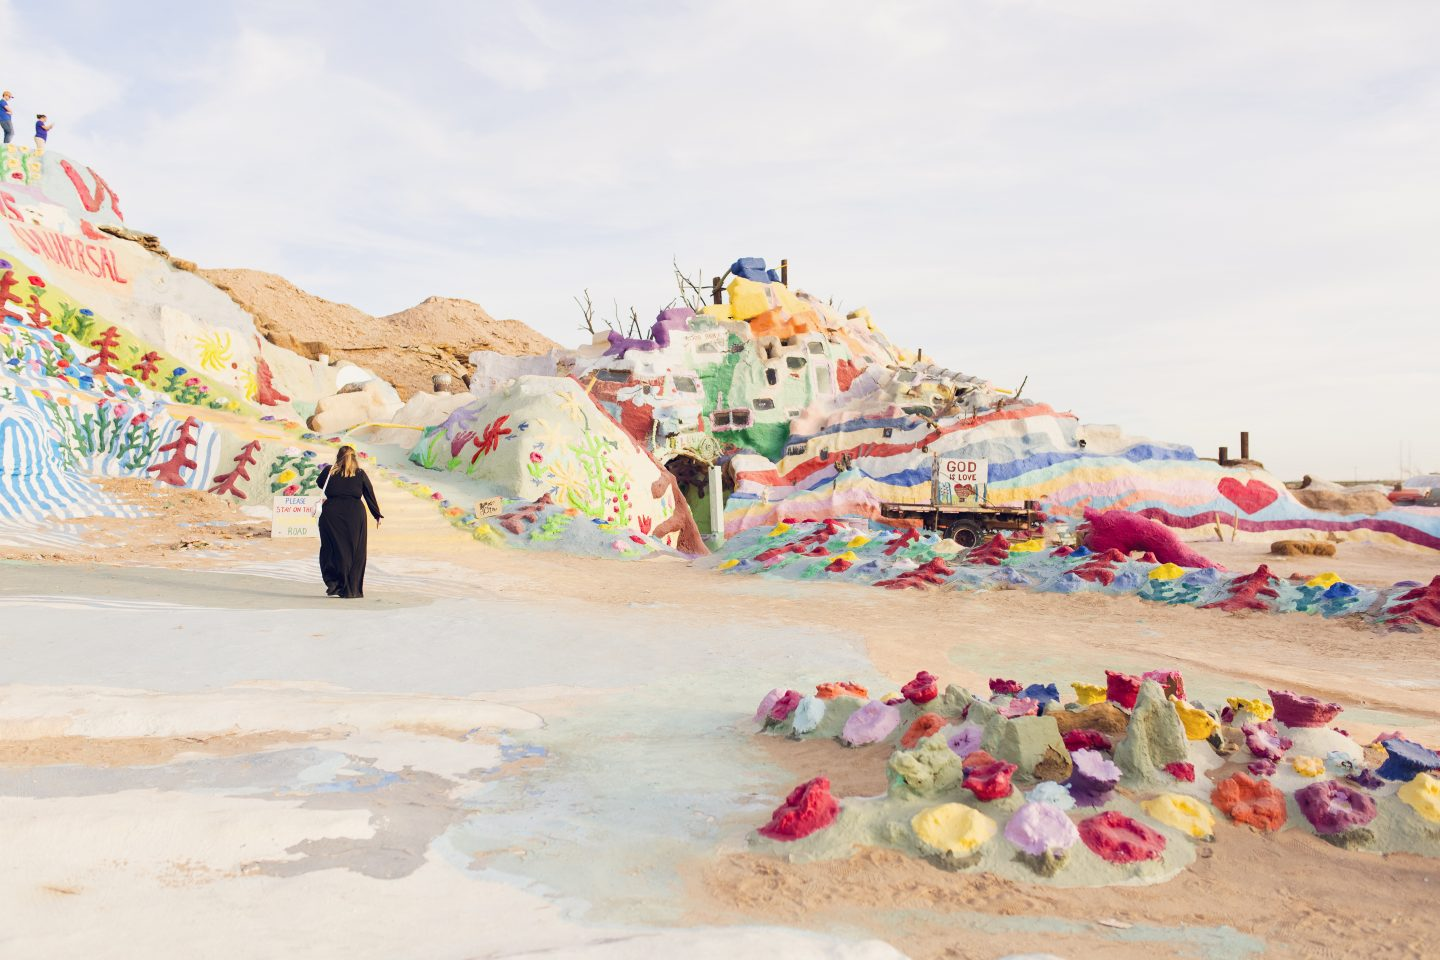 Salvation Mountain in California is in my top 10 favorite beautiful places in the US to visit.